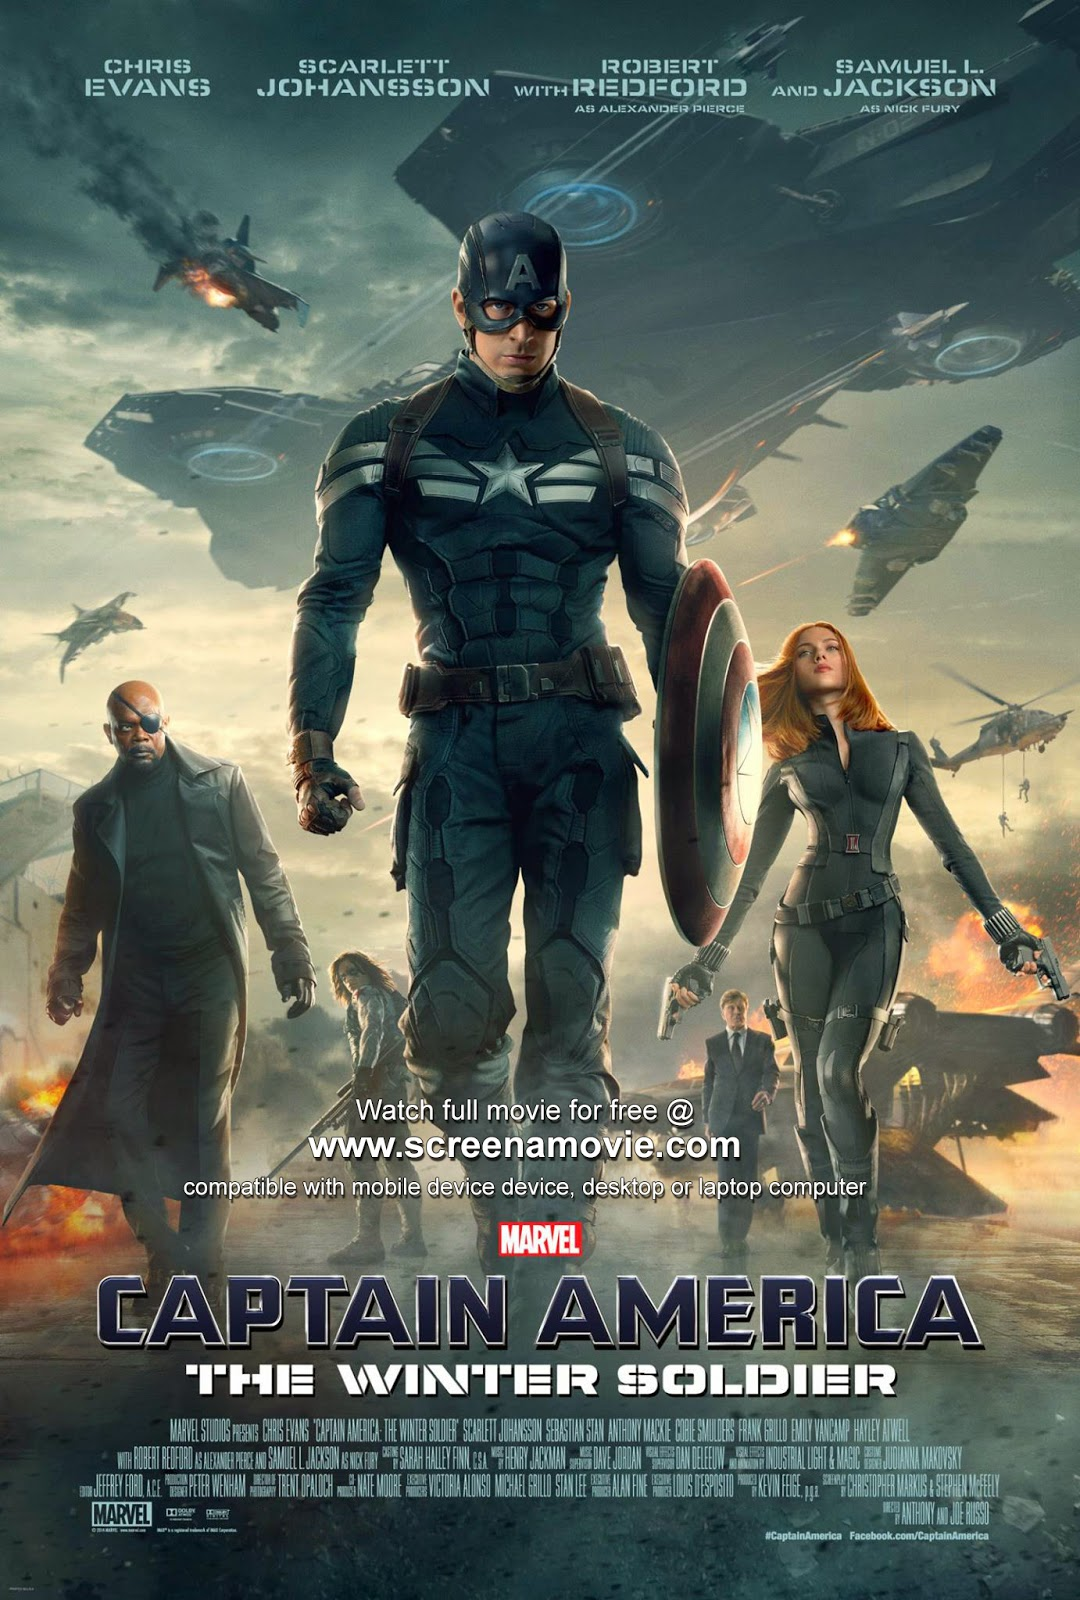 Captain America: The Winter Soldier @screenamovie